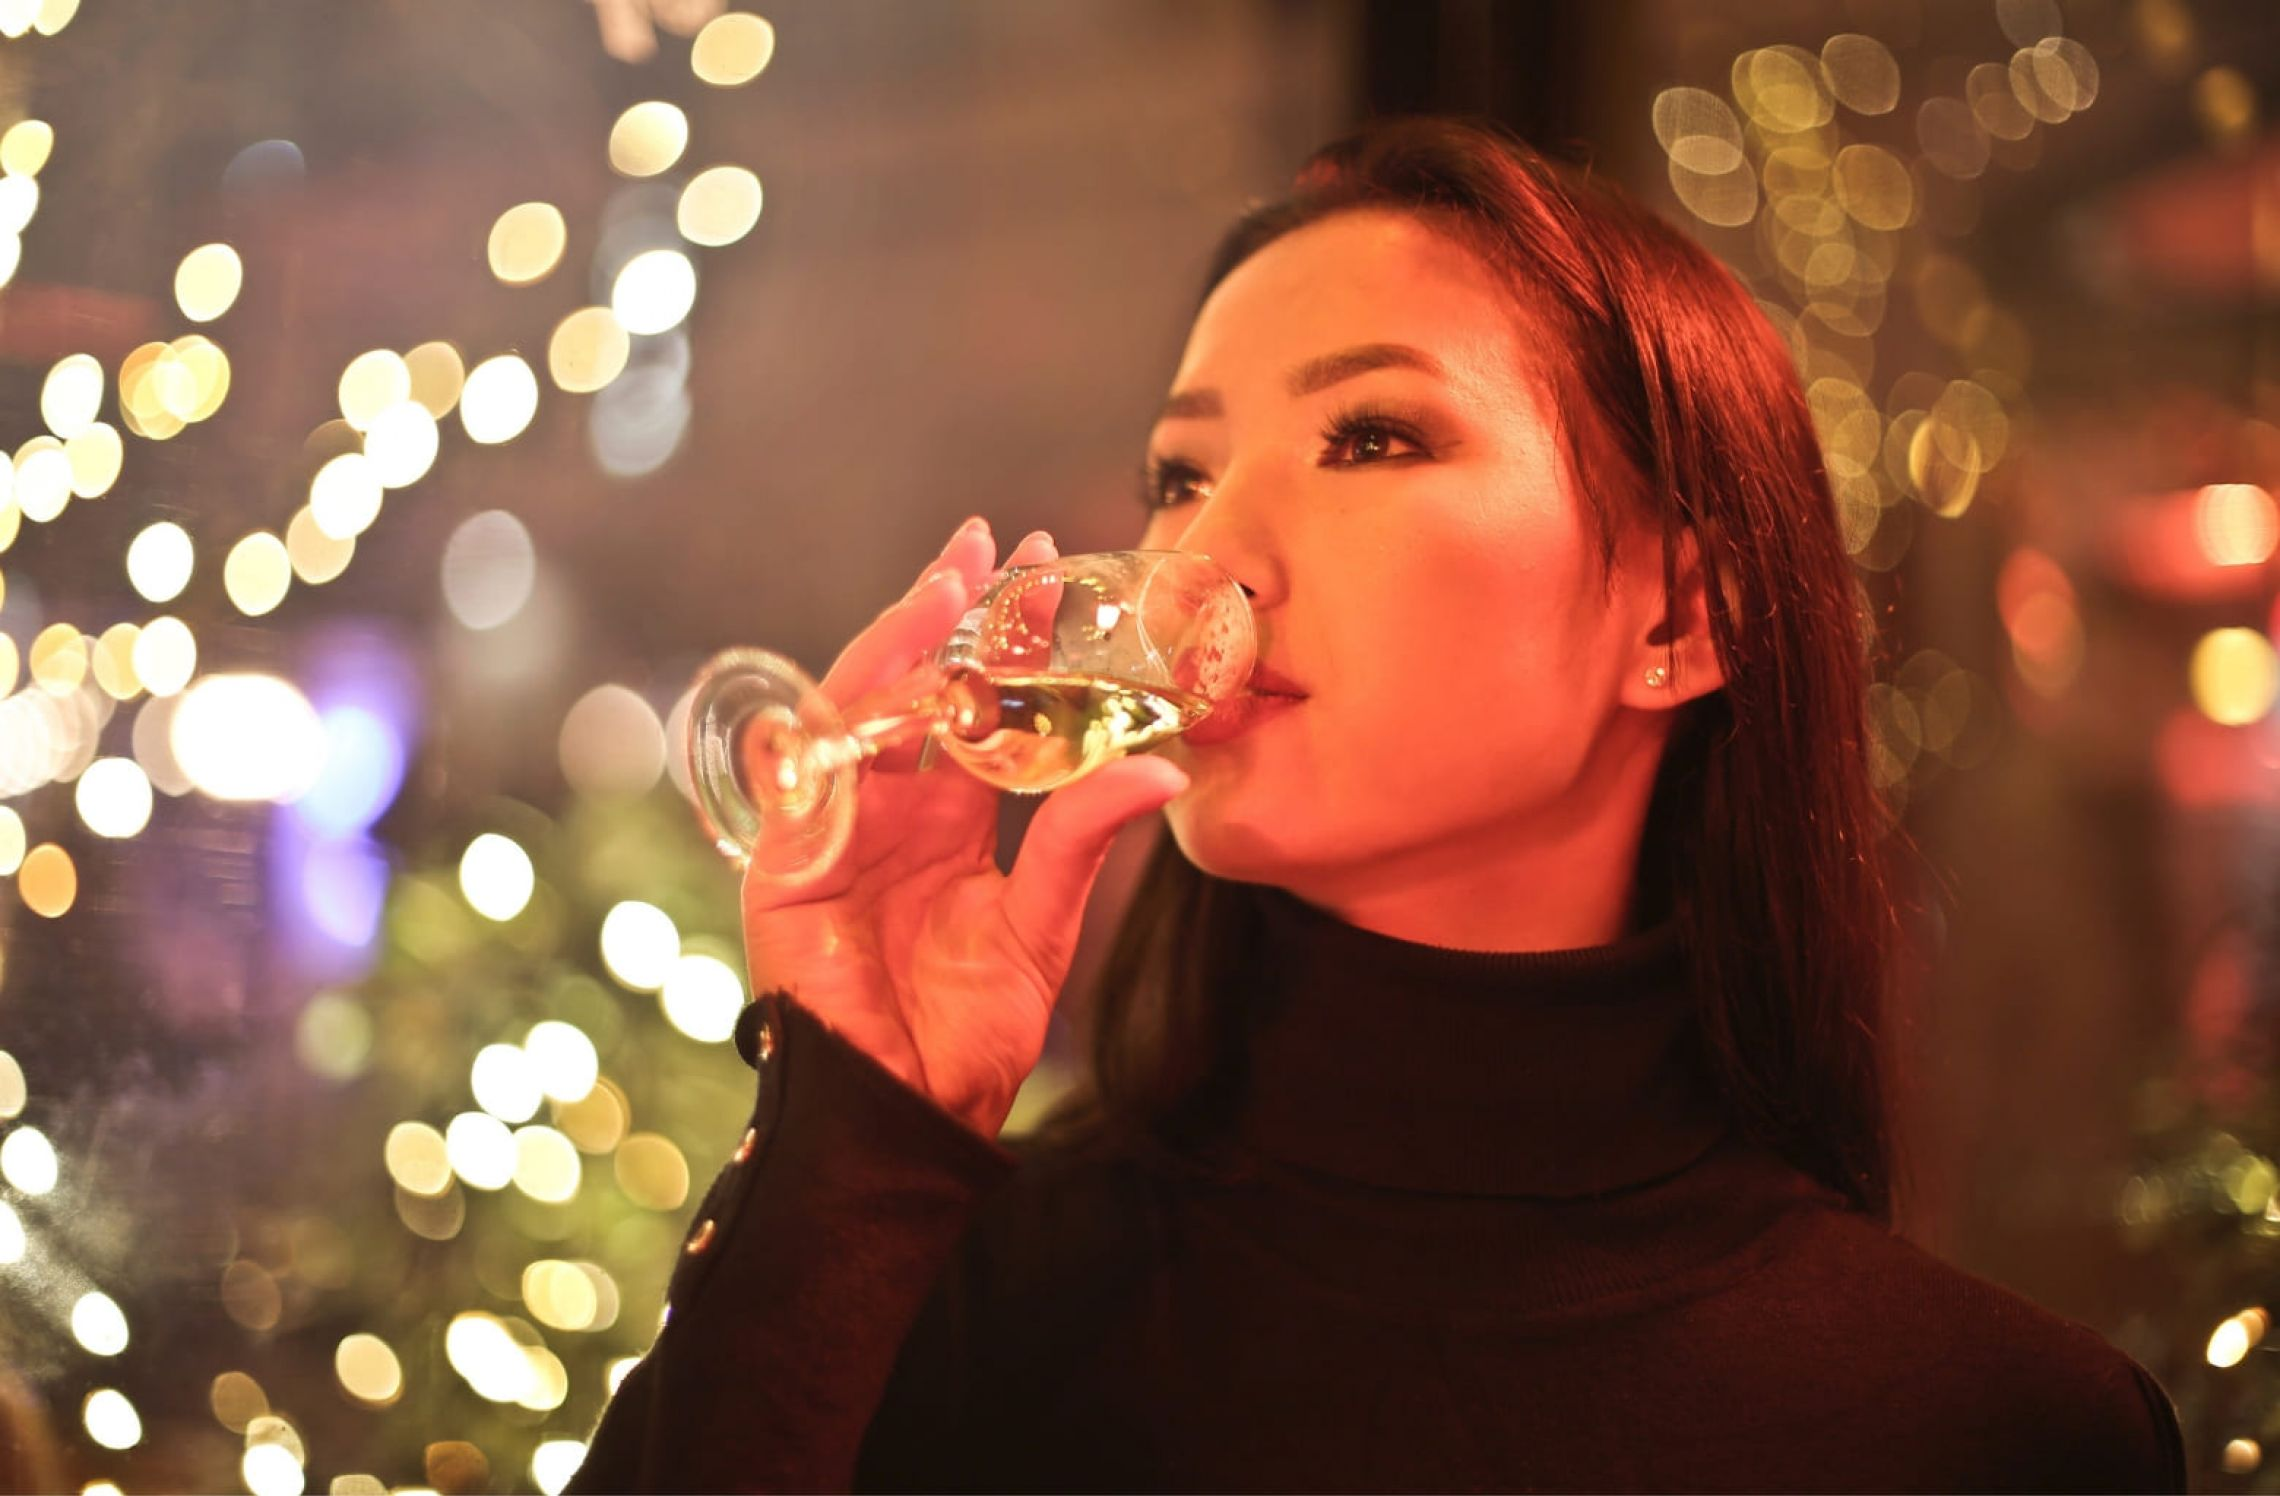 Photo for: The Rise of China's Young Female Wine Drinkers